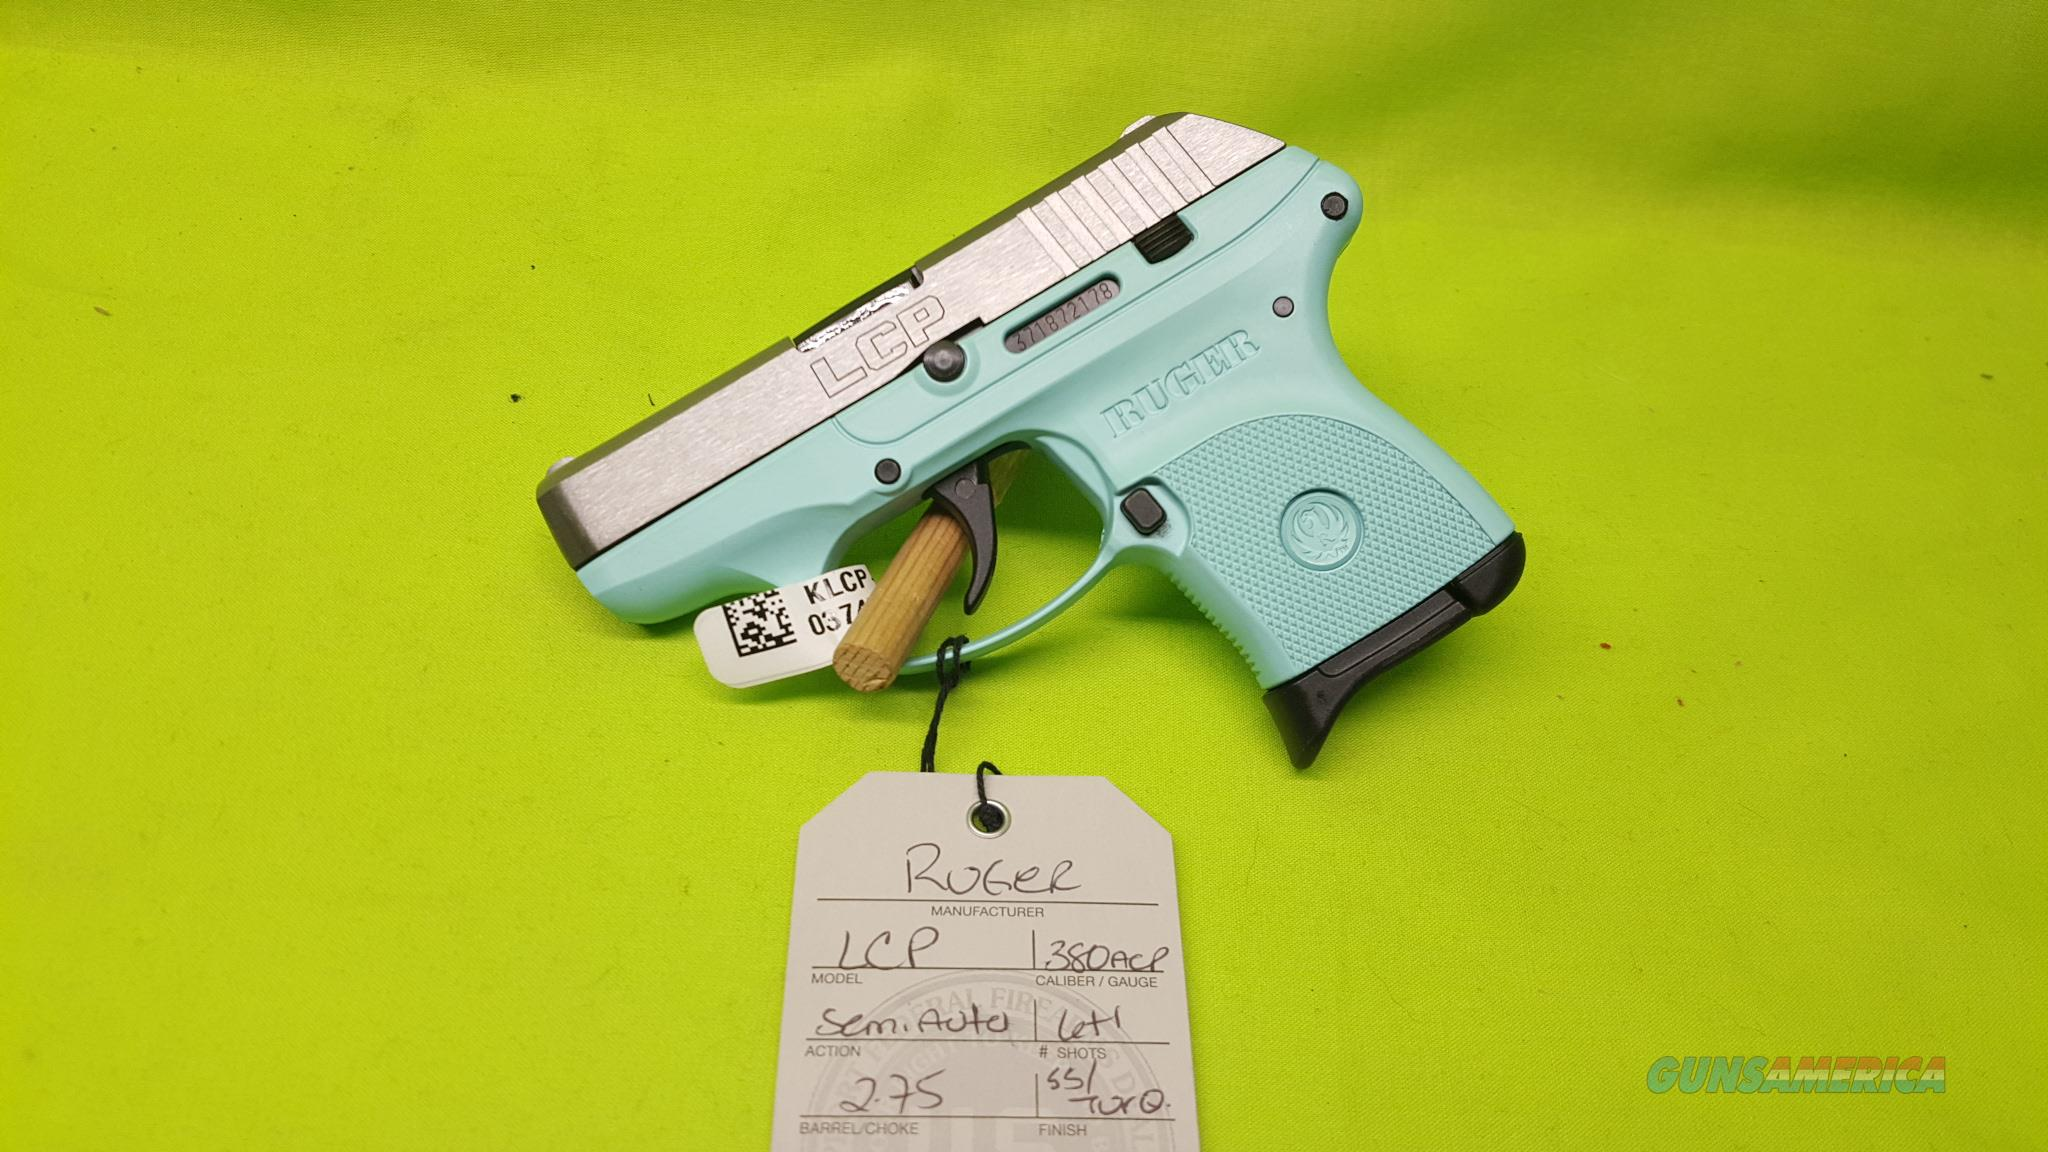 RUGER LCP 380 ACP 380ACP SS / TURQUOISE 6RD 3745  Guns > Pistols > Ruger Semi-Auto Pistols > LCP